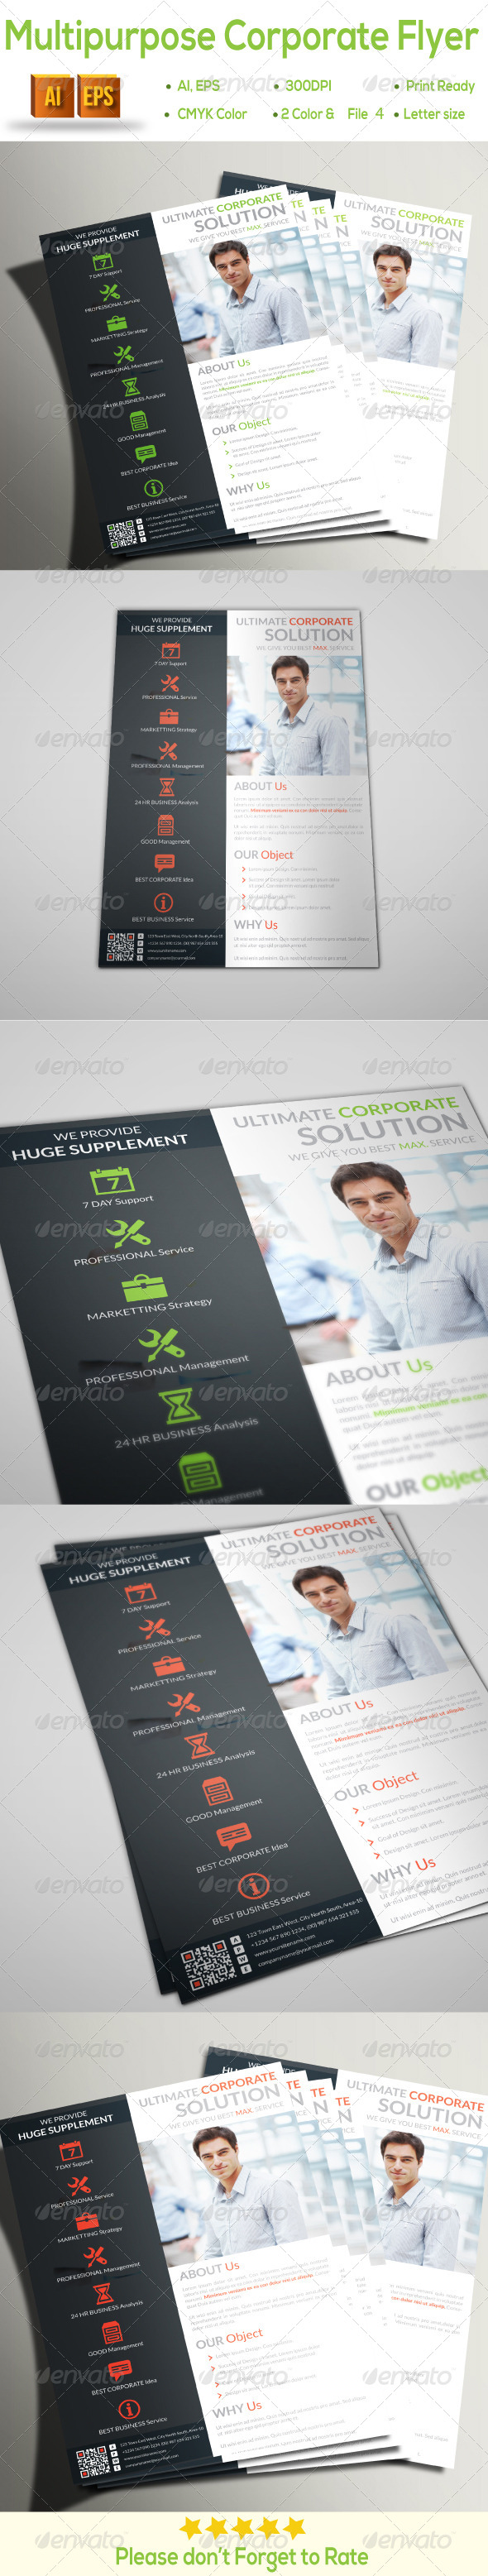 GraphicRiver Multipurpose Corporate Flyer 8296400